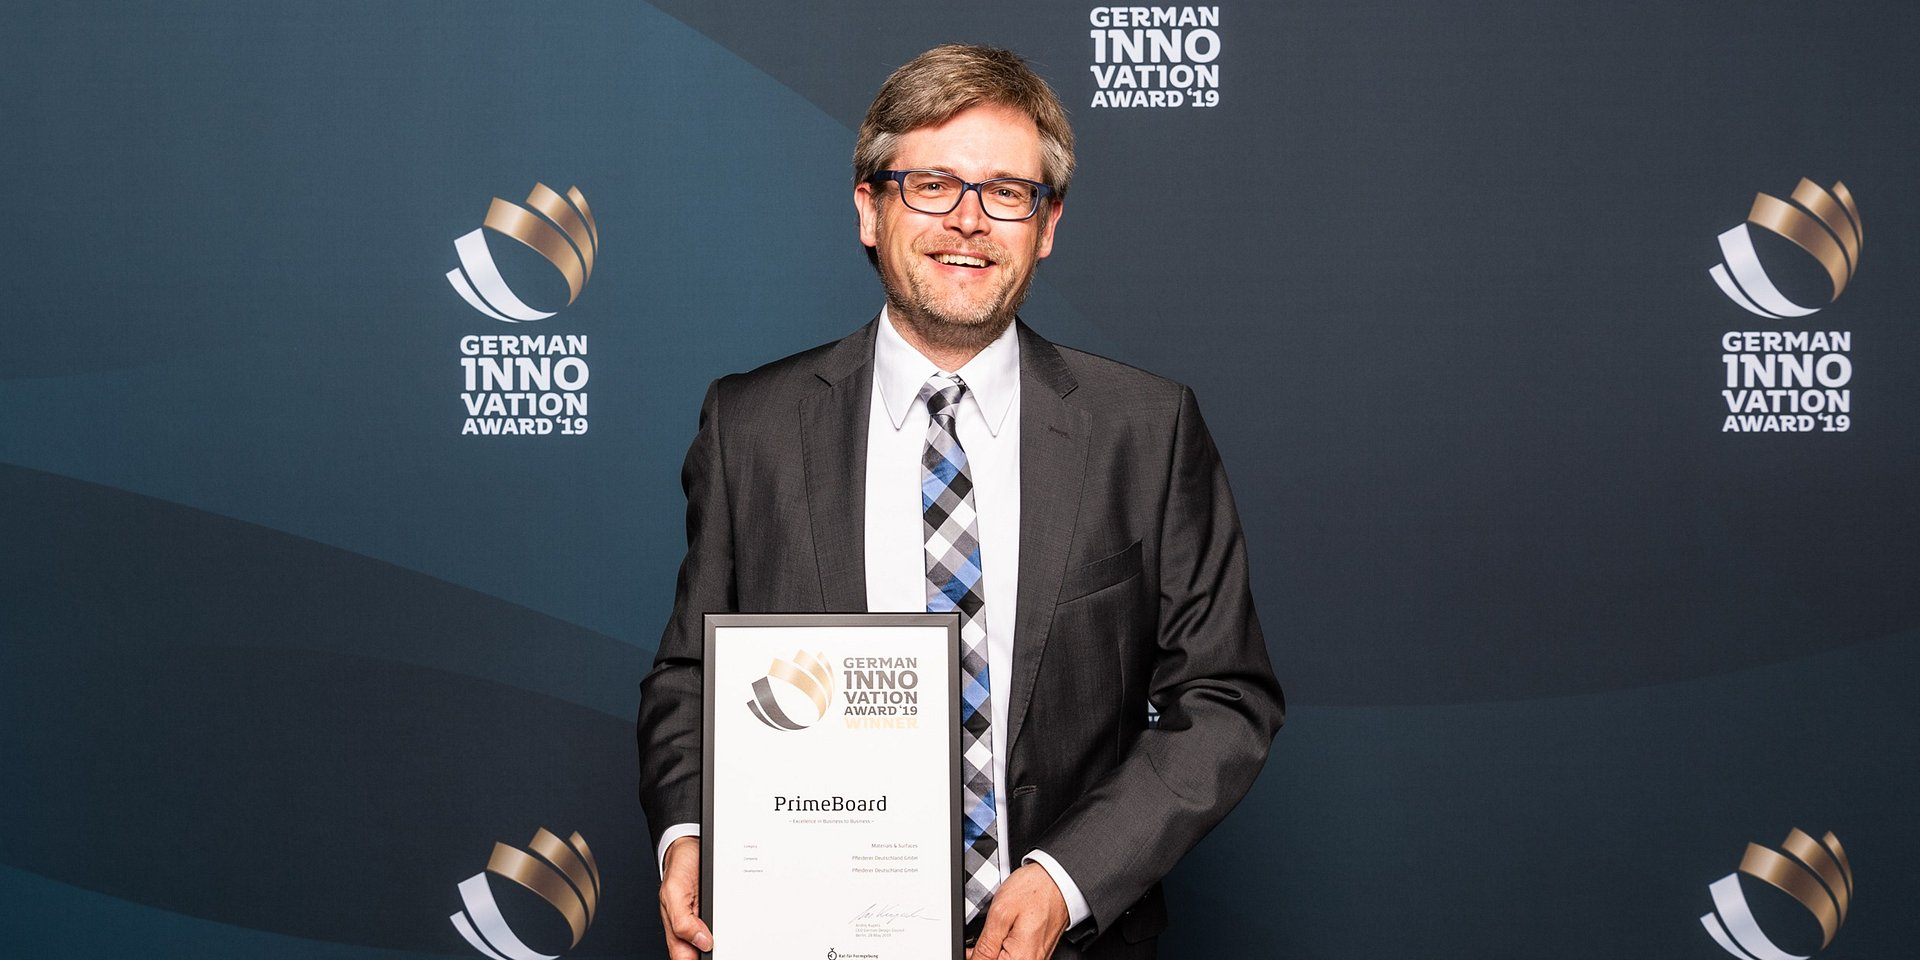 Płyta PrimeBoard nagrodzona German Innovation Award 2019